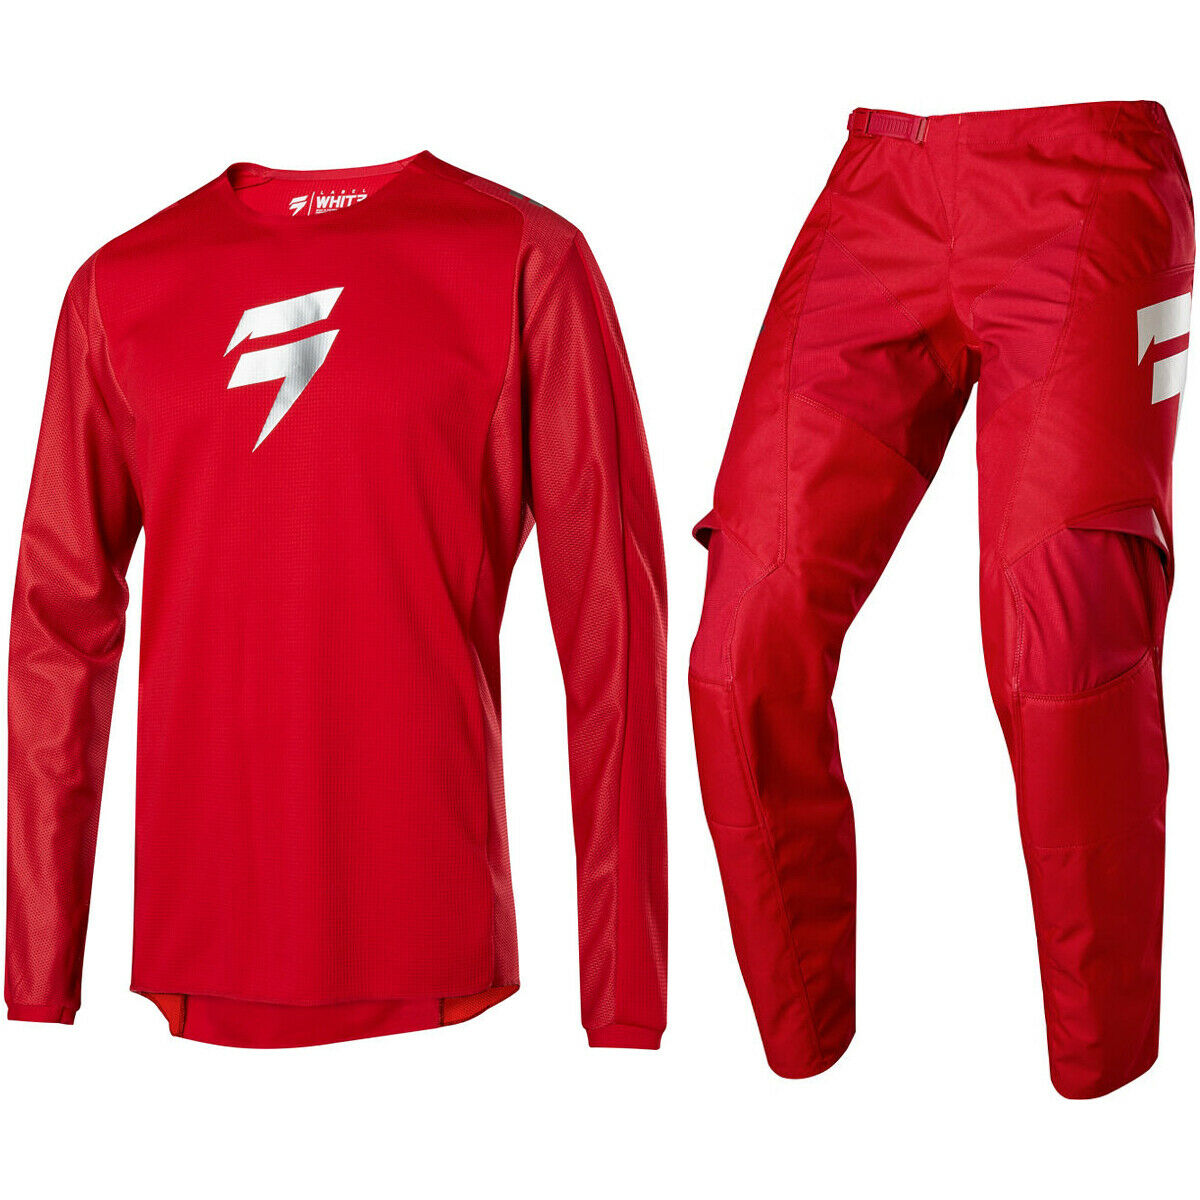 LE Snydicate Clay Grey white Label Motocross Pants Jersey Shift MX Whit3